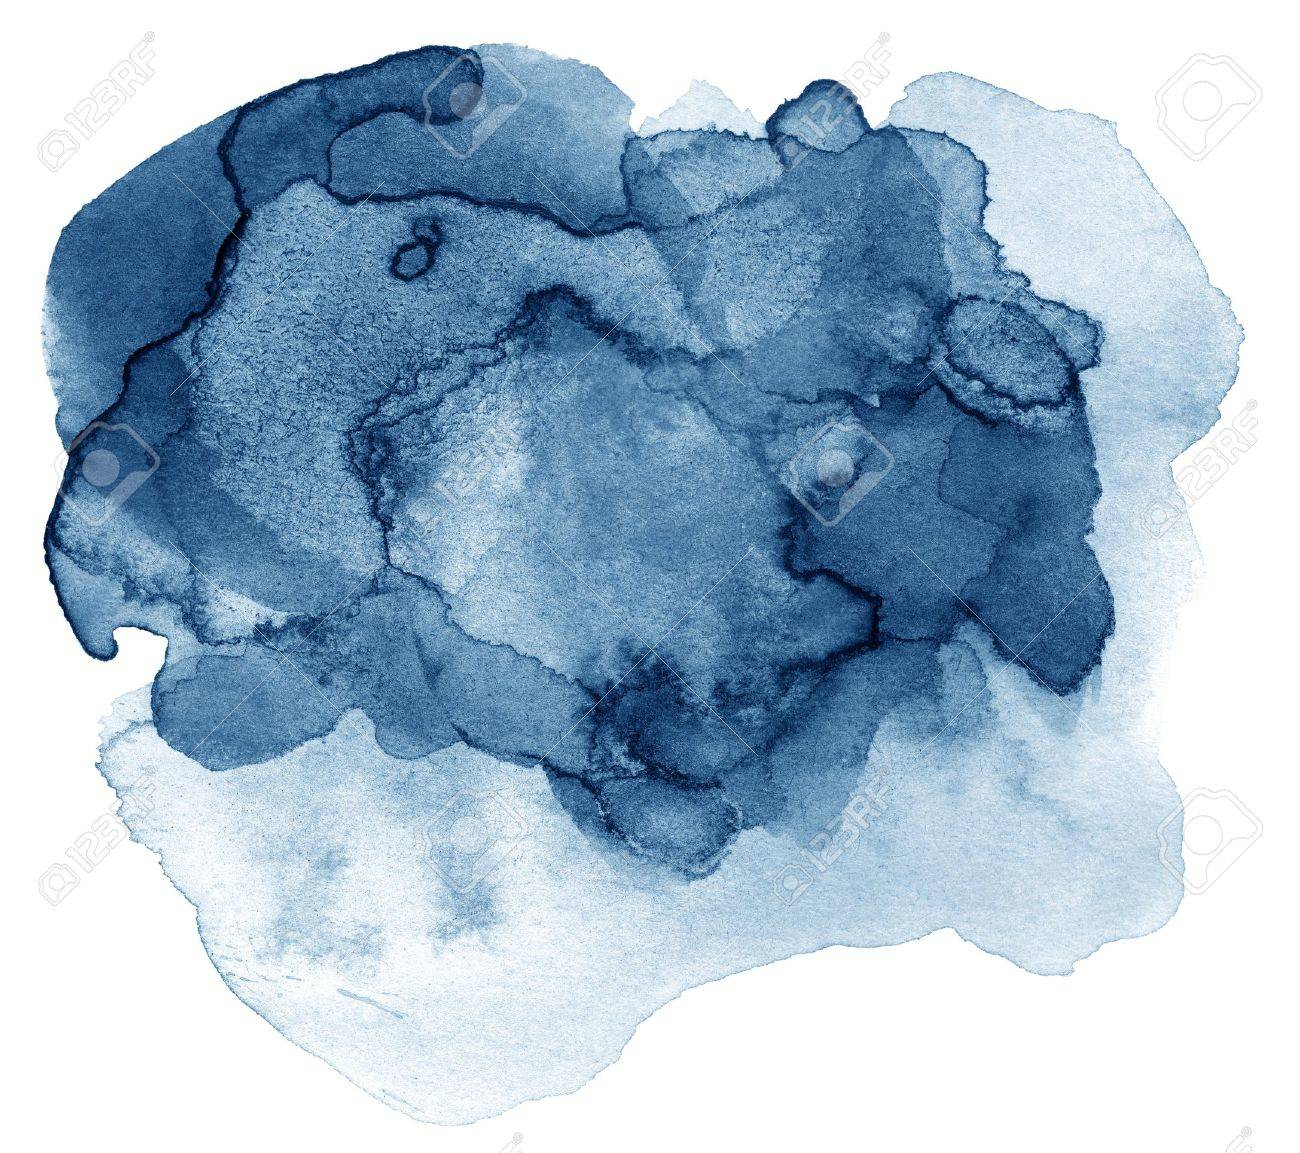 Abstract hand drawn watercolor background, for backgrounds or textures Stock Photo - 11686240